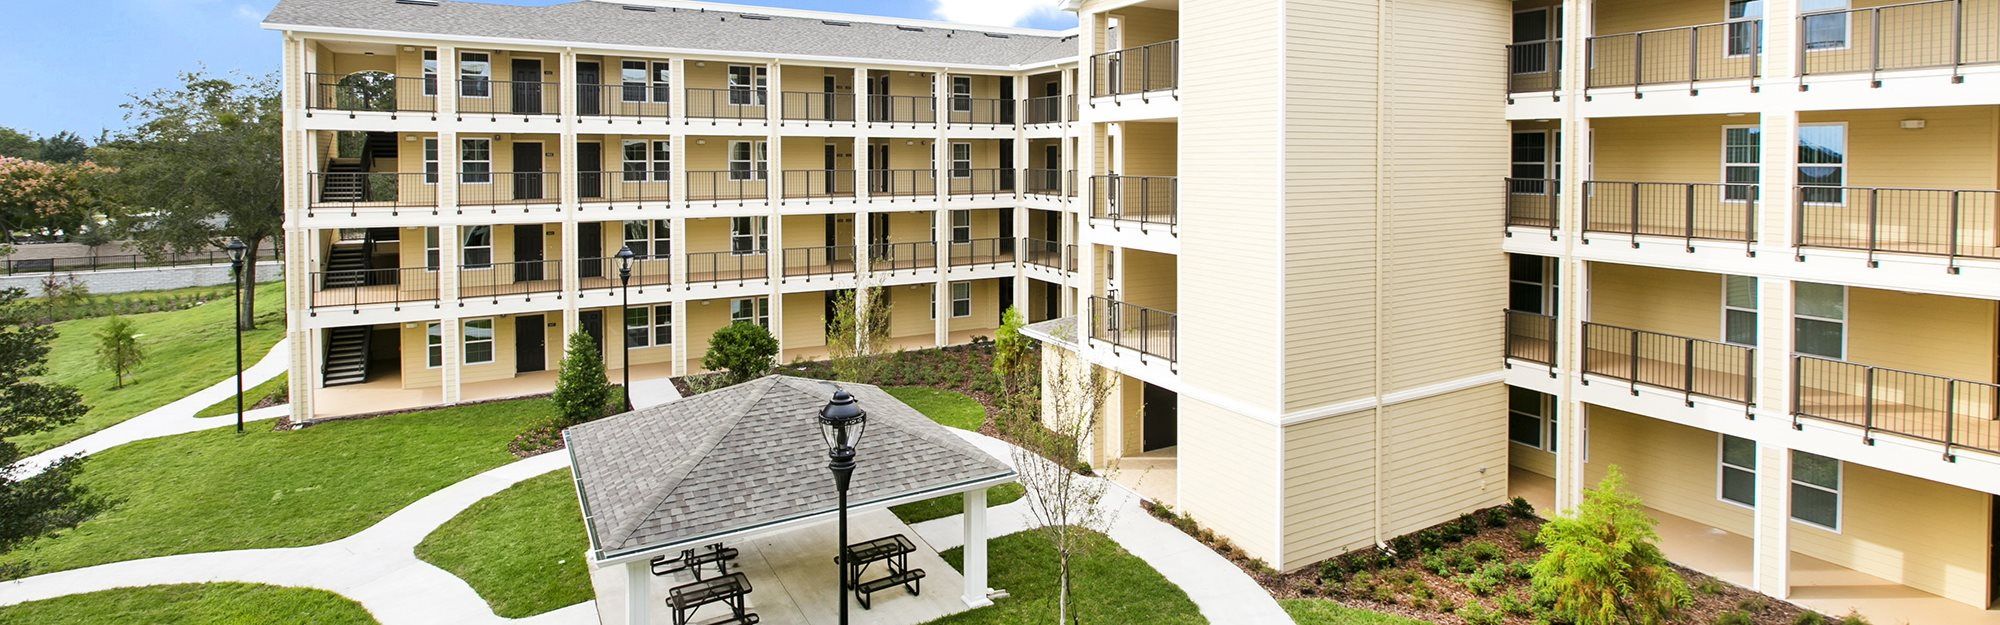 Garden Park Apartments for rent in Fern Park, FL. Make this community your new home or visit other Concord Rents communities at ConcordRents.com. Courtyard